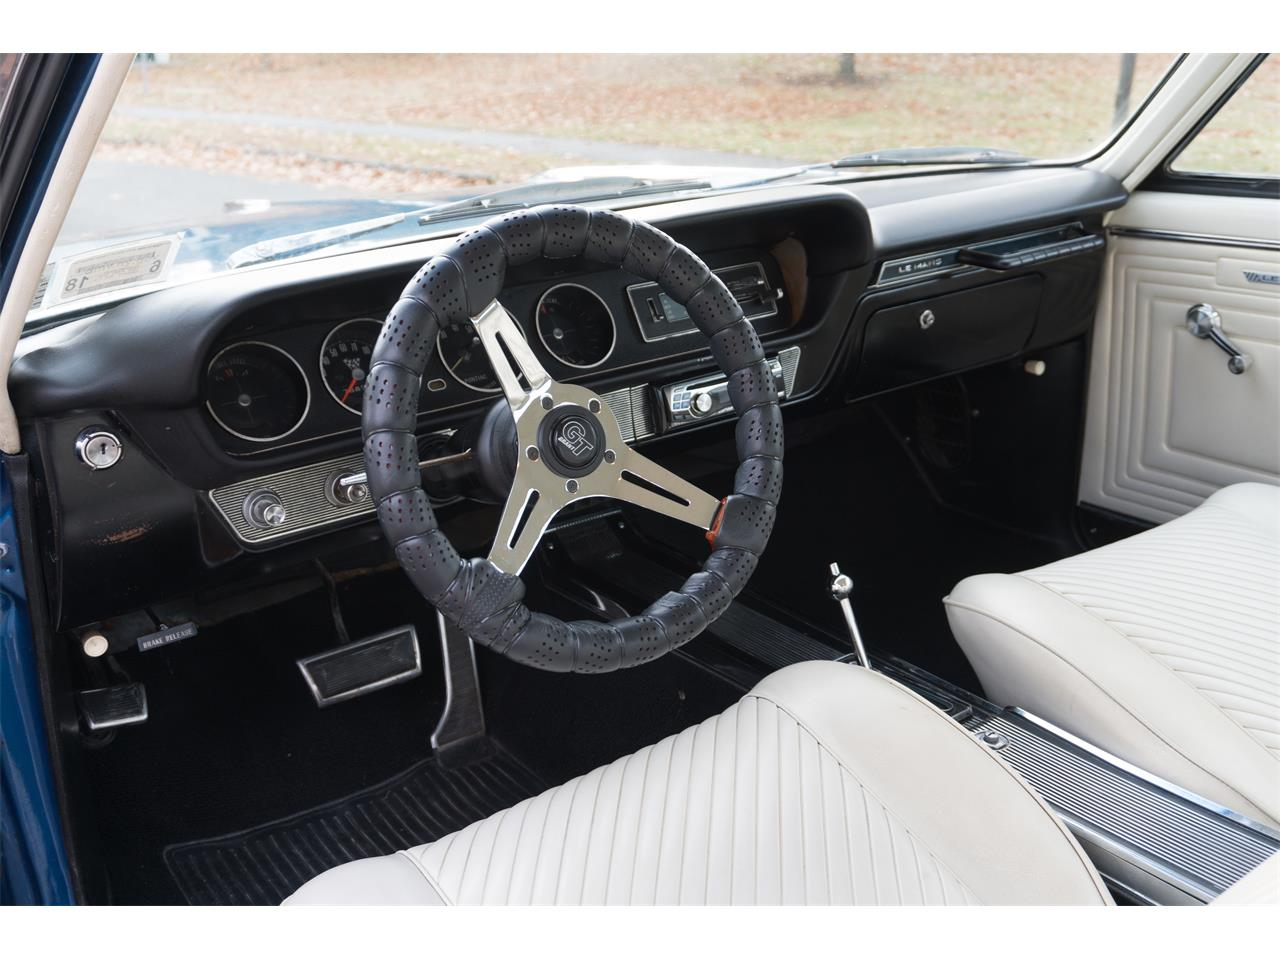 Large Picture of 1965 Pontiac LeMans located in Riverside Connecticut - $22,500.00 - MGO8